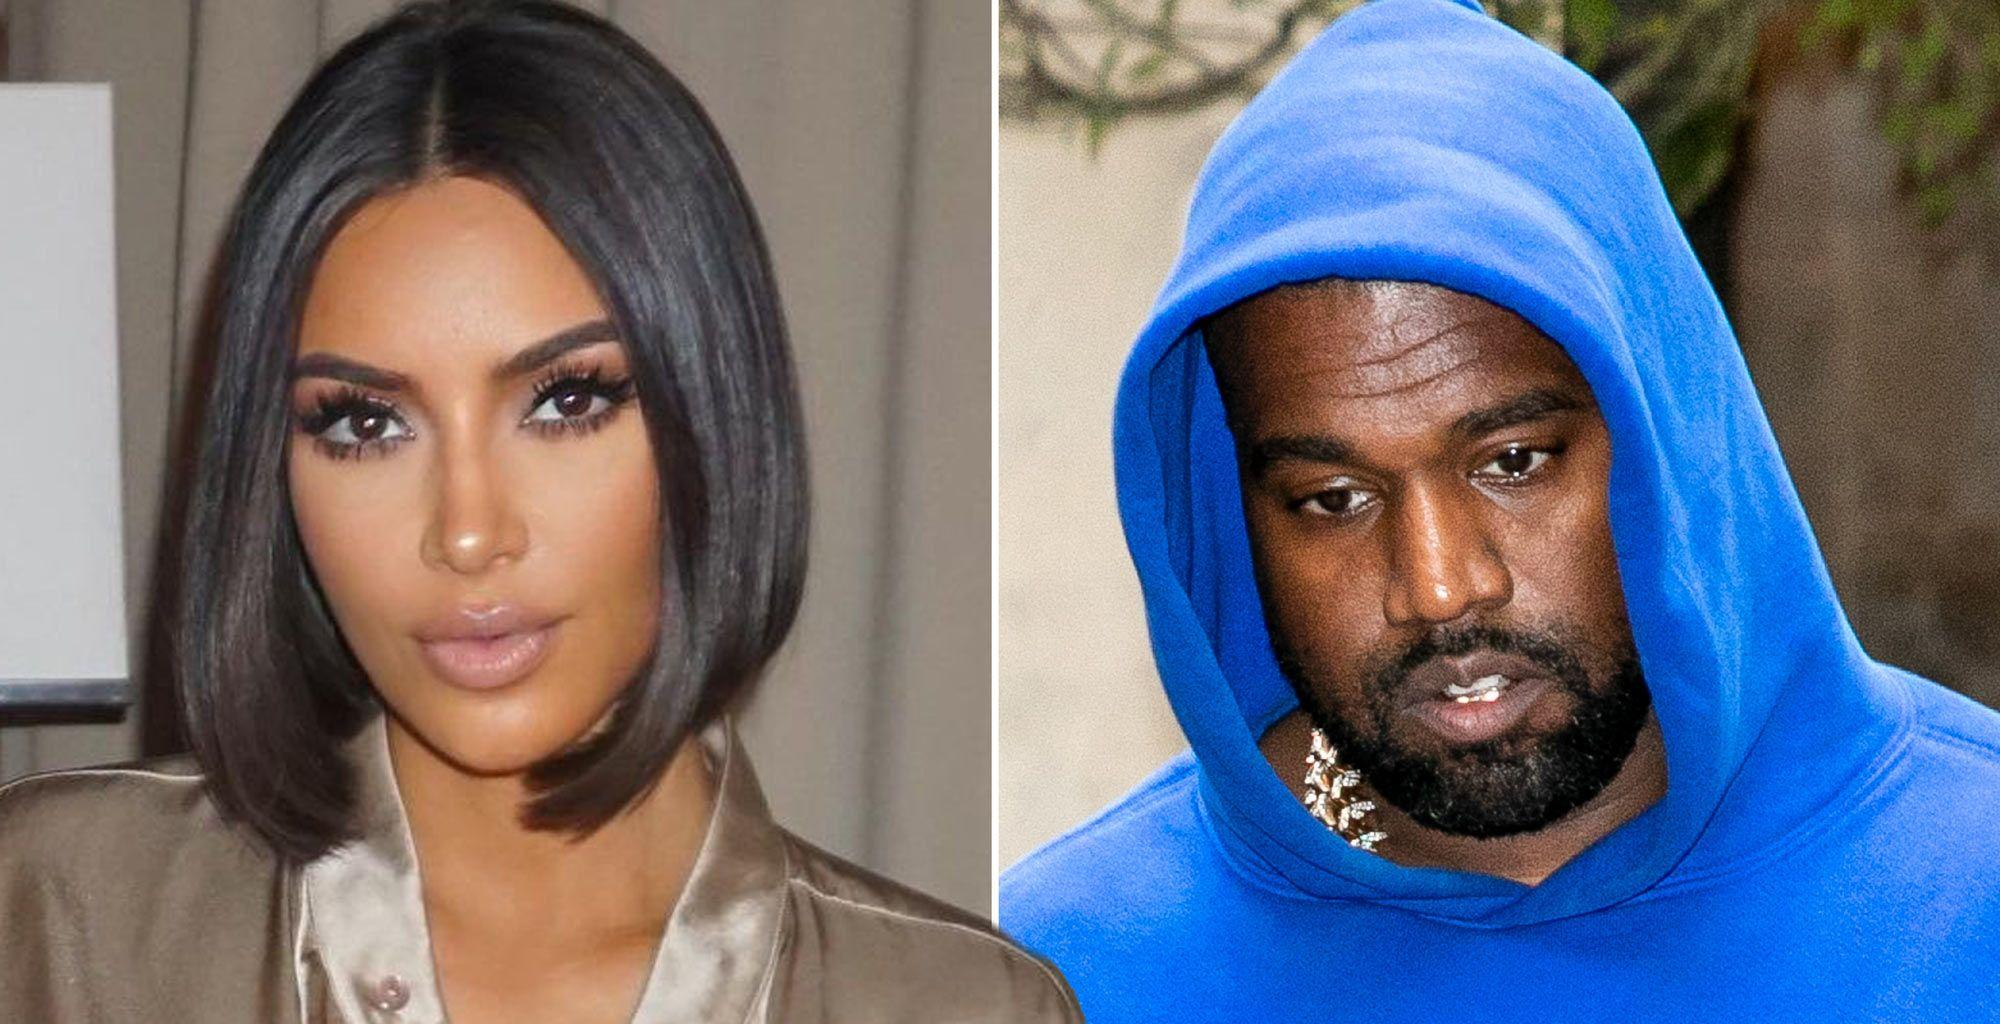 KUWTK: Kim Kardashian Will Most Likely Keep The $60 Million Mansion She Used To Share With Kanye West After Their Divorce - Here's Why!